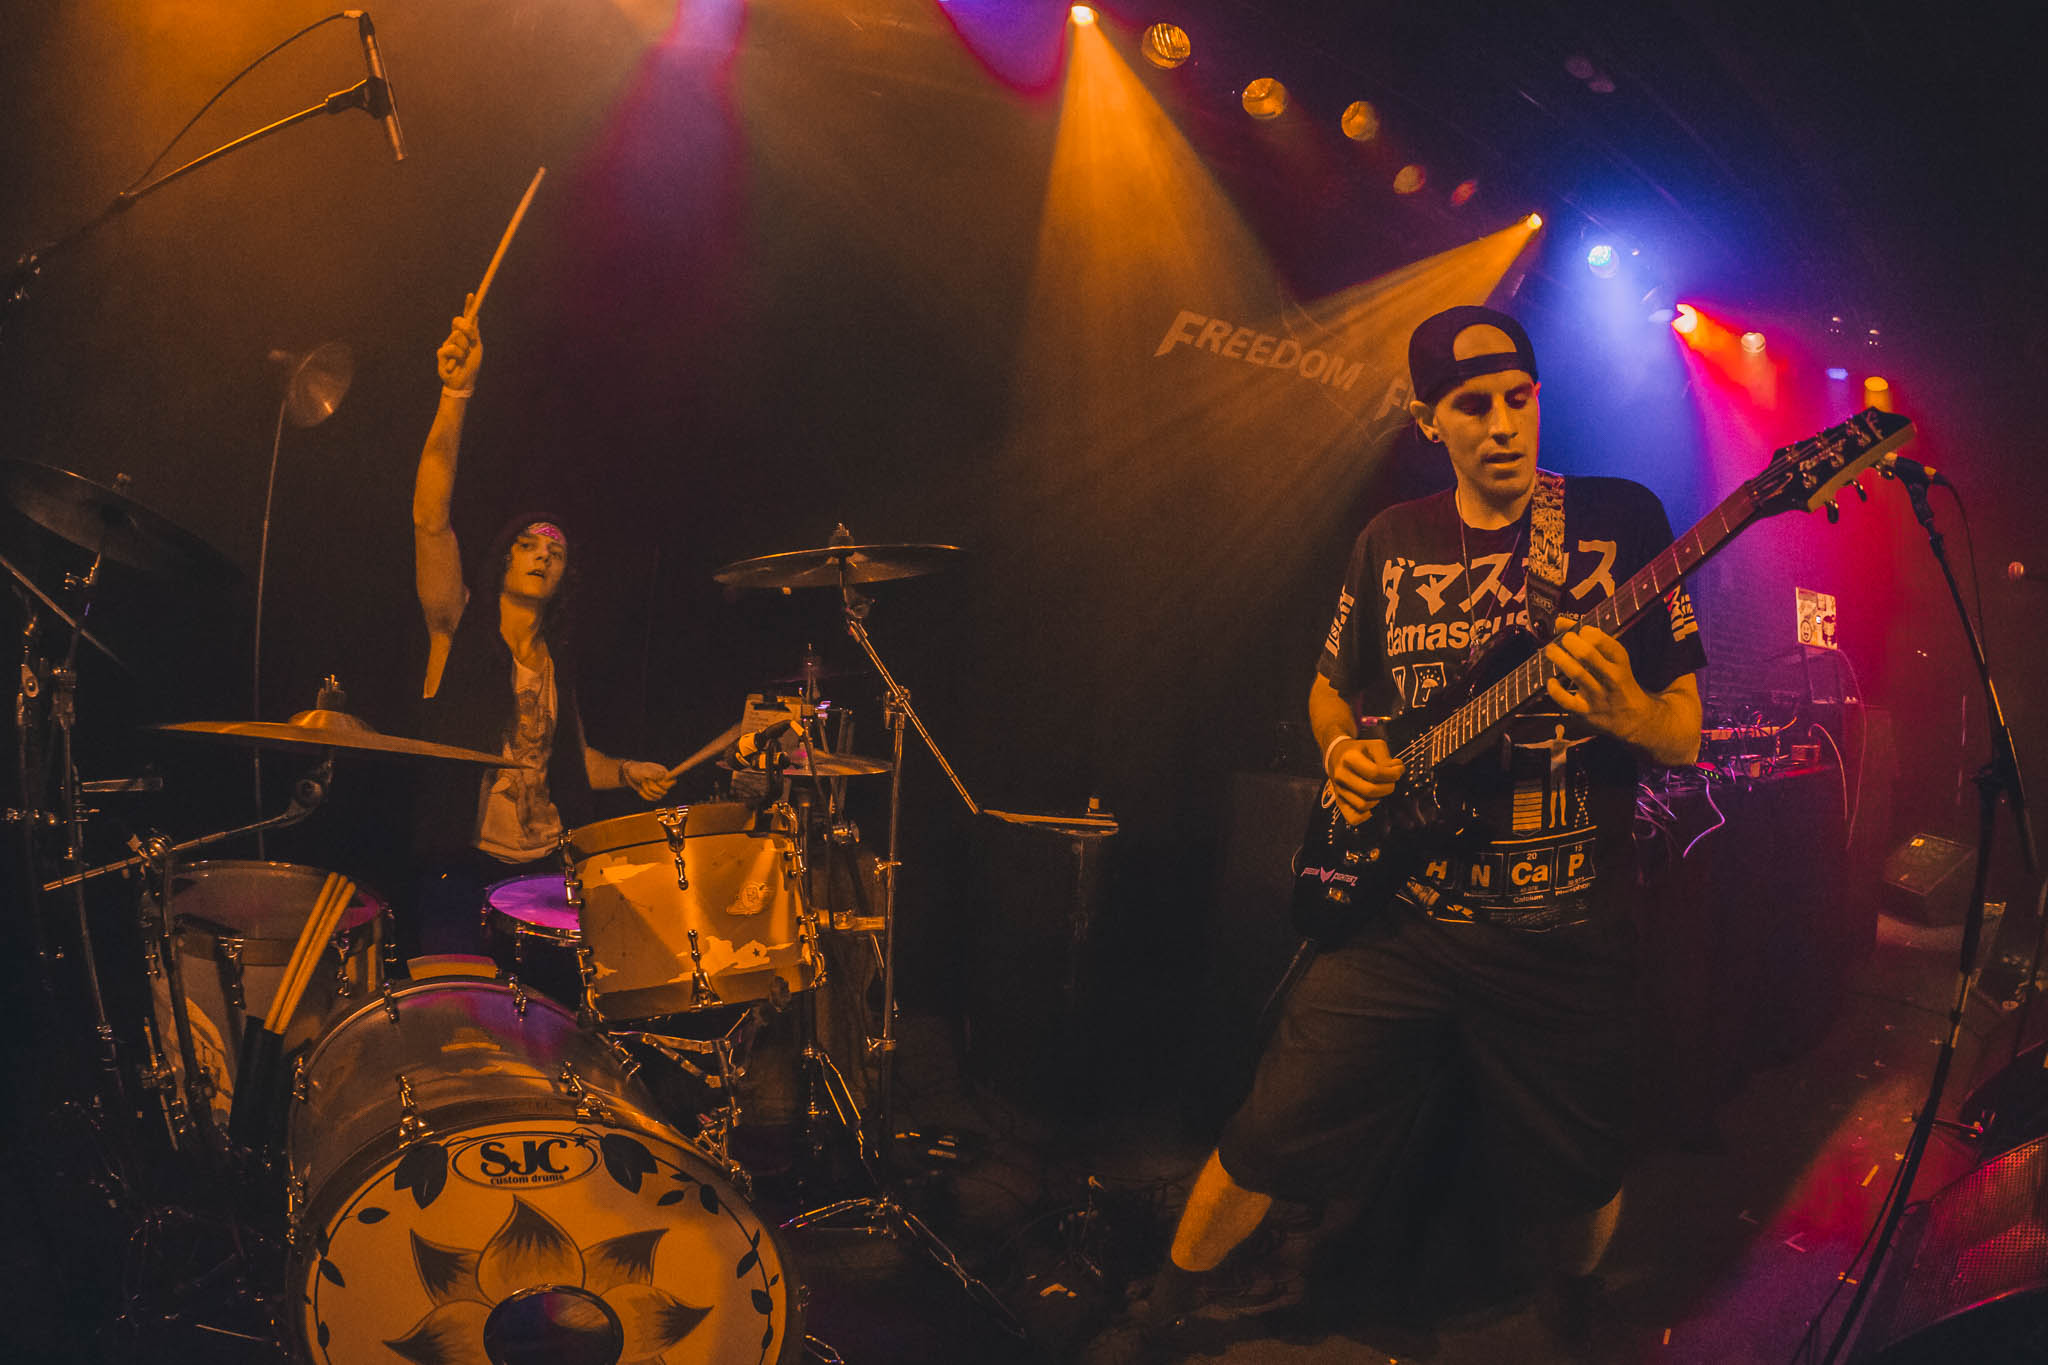 Freedom Fighterz Live, UPBEATDRUMMER, EXIT FIVE, THE SOCIAL, ORLANDO, FL, HYBRID ROCK, ELECTRONIC MUSIC